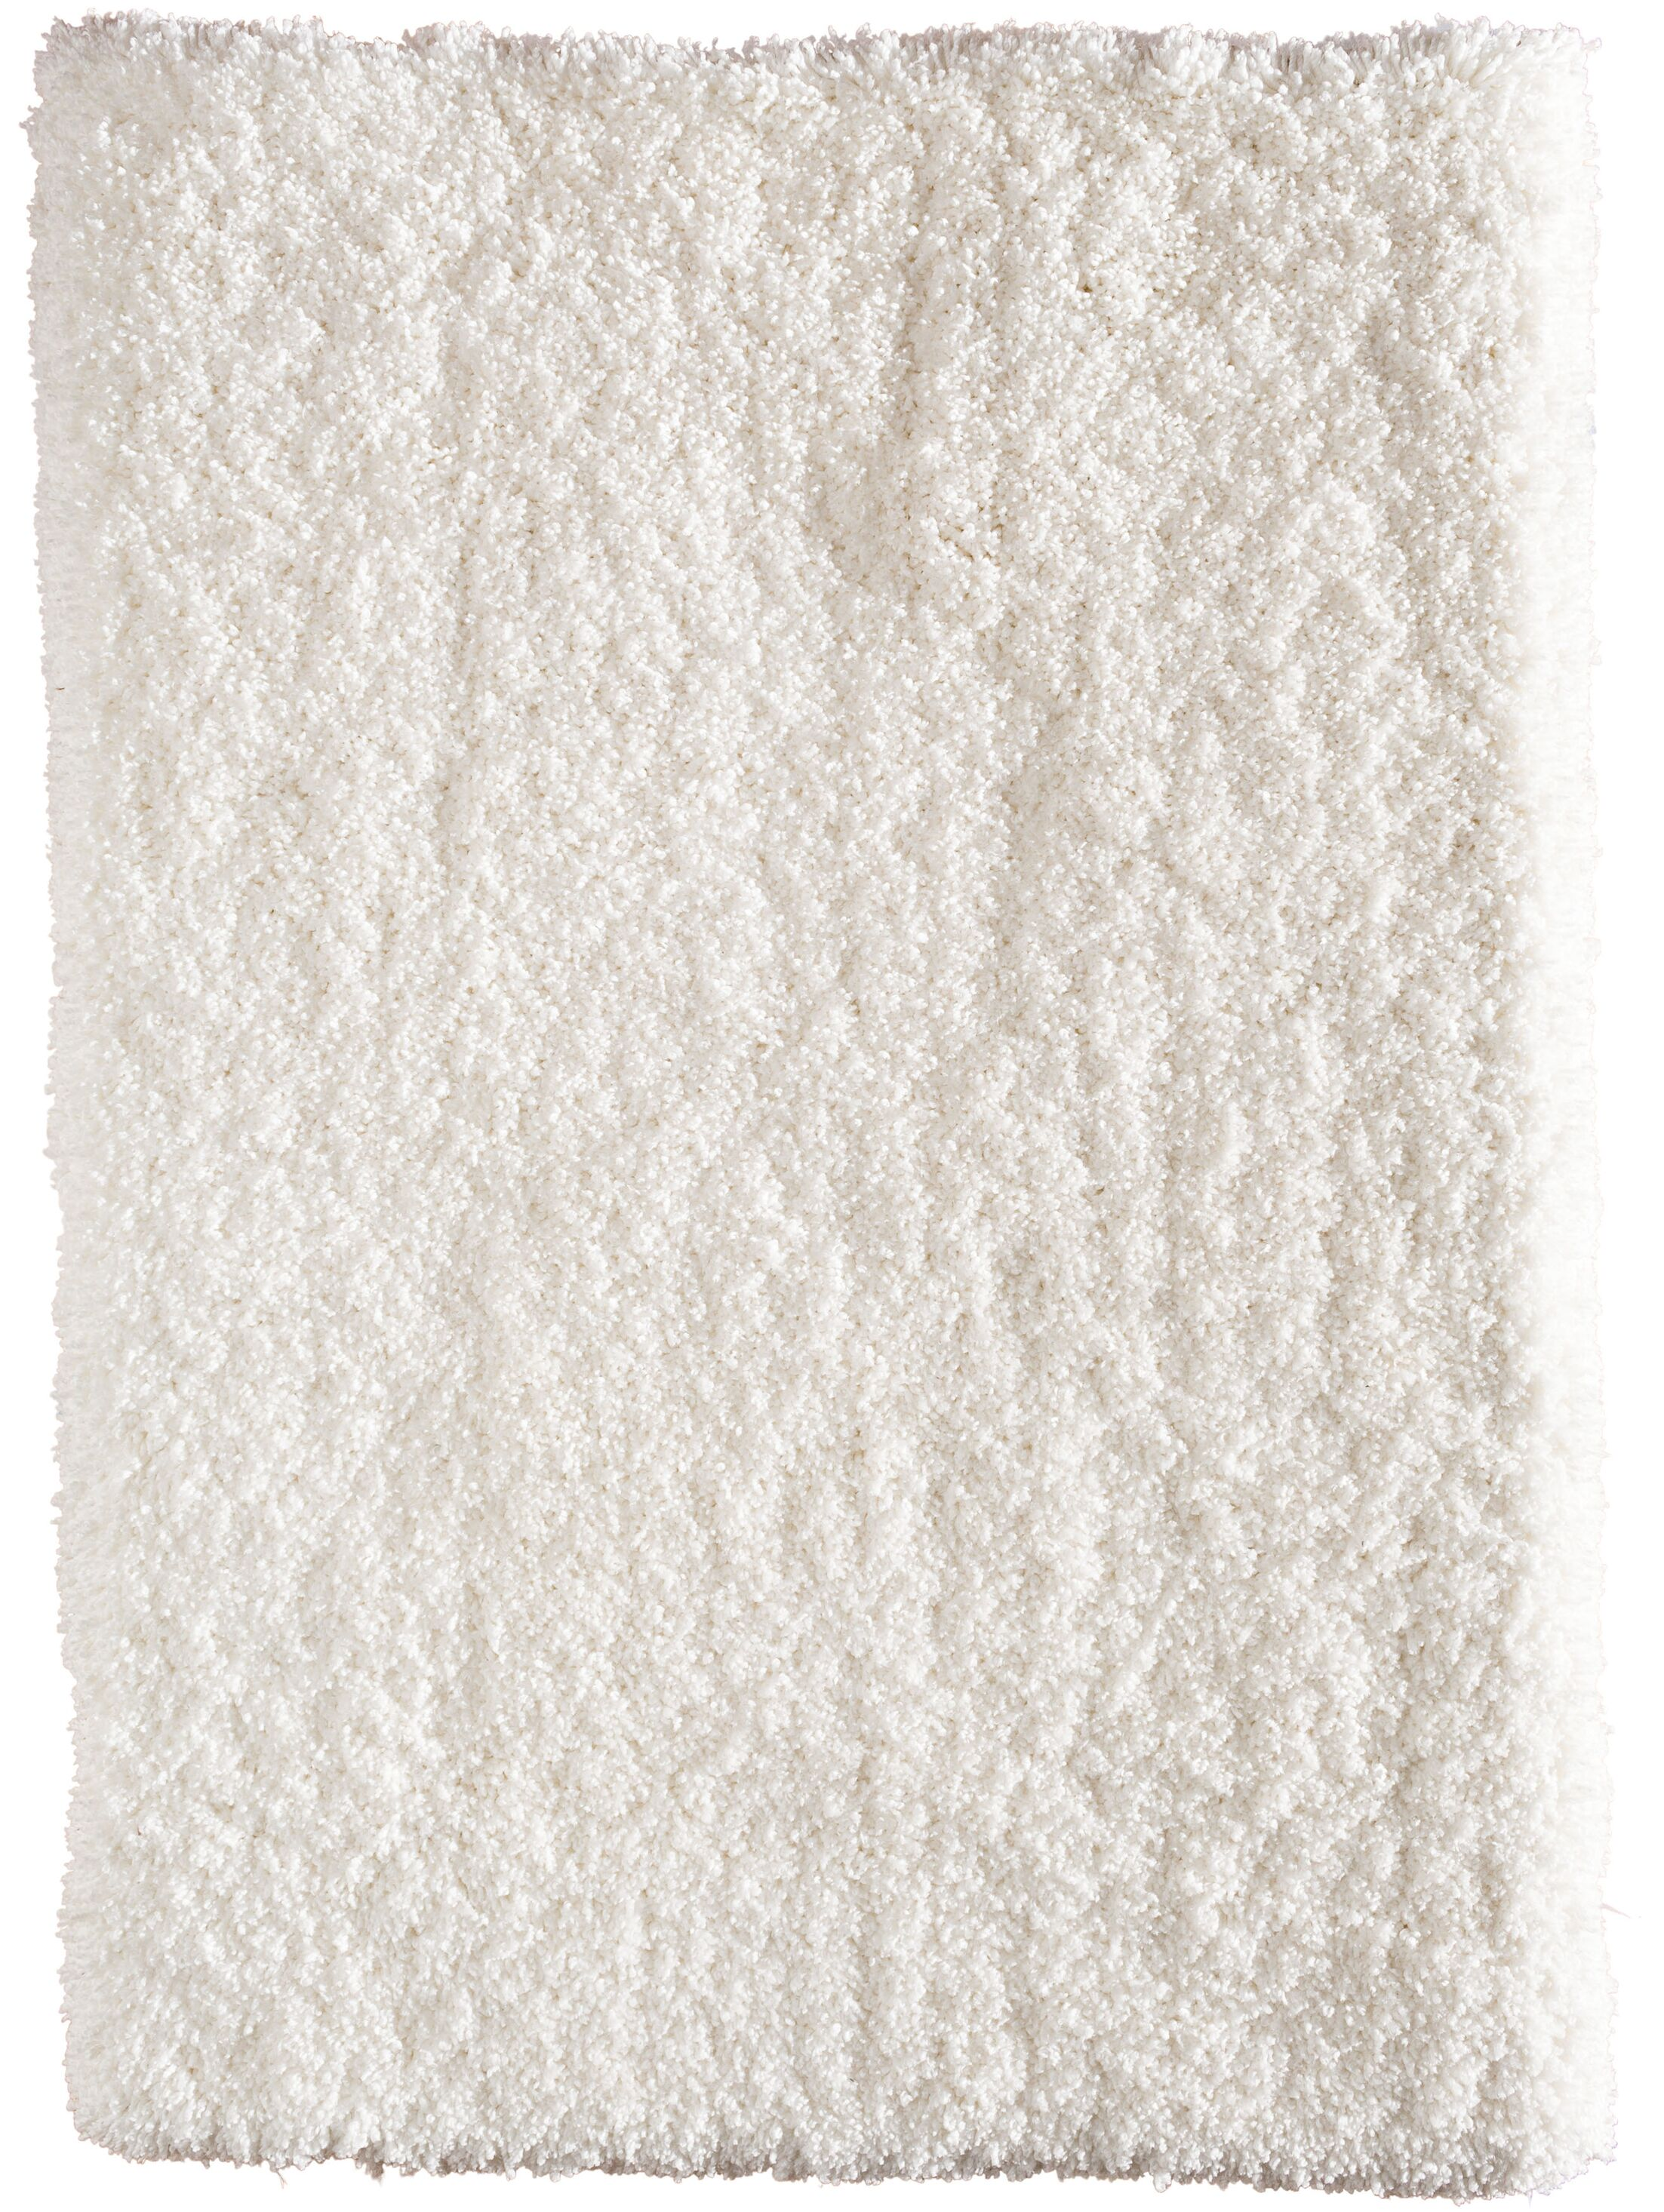 Voorhees Hand-Tufted Snow White Area Rug Rug Size: 7'6